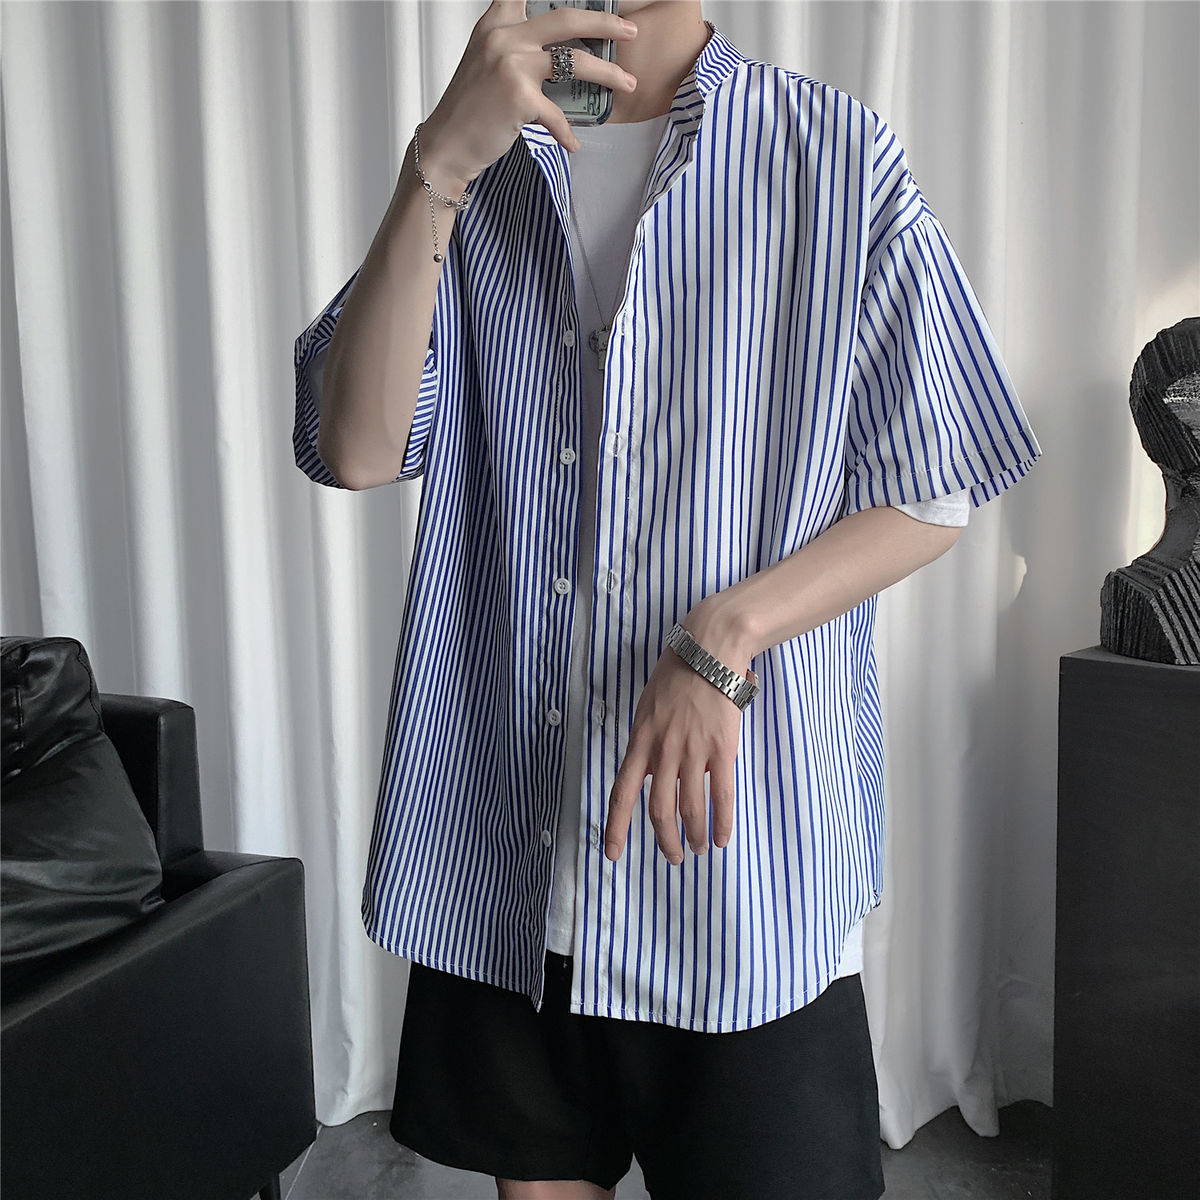 2020 Summer Men's Stripe Printing Splicing Color Shirt Loose Casual Cotton Clothes Shirt Blue/black Color Camisa Masculina M-5XL